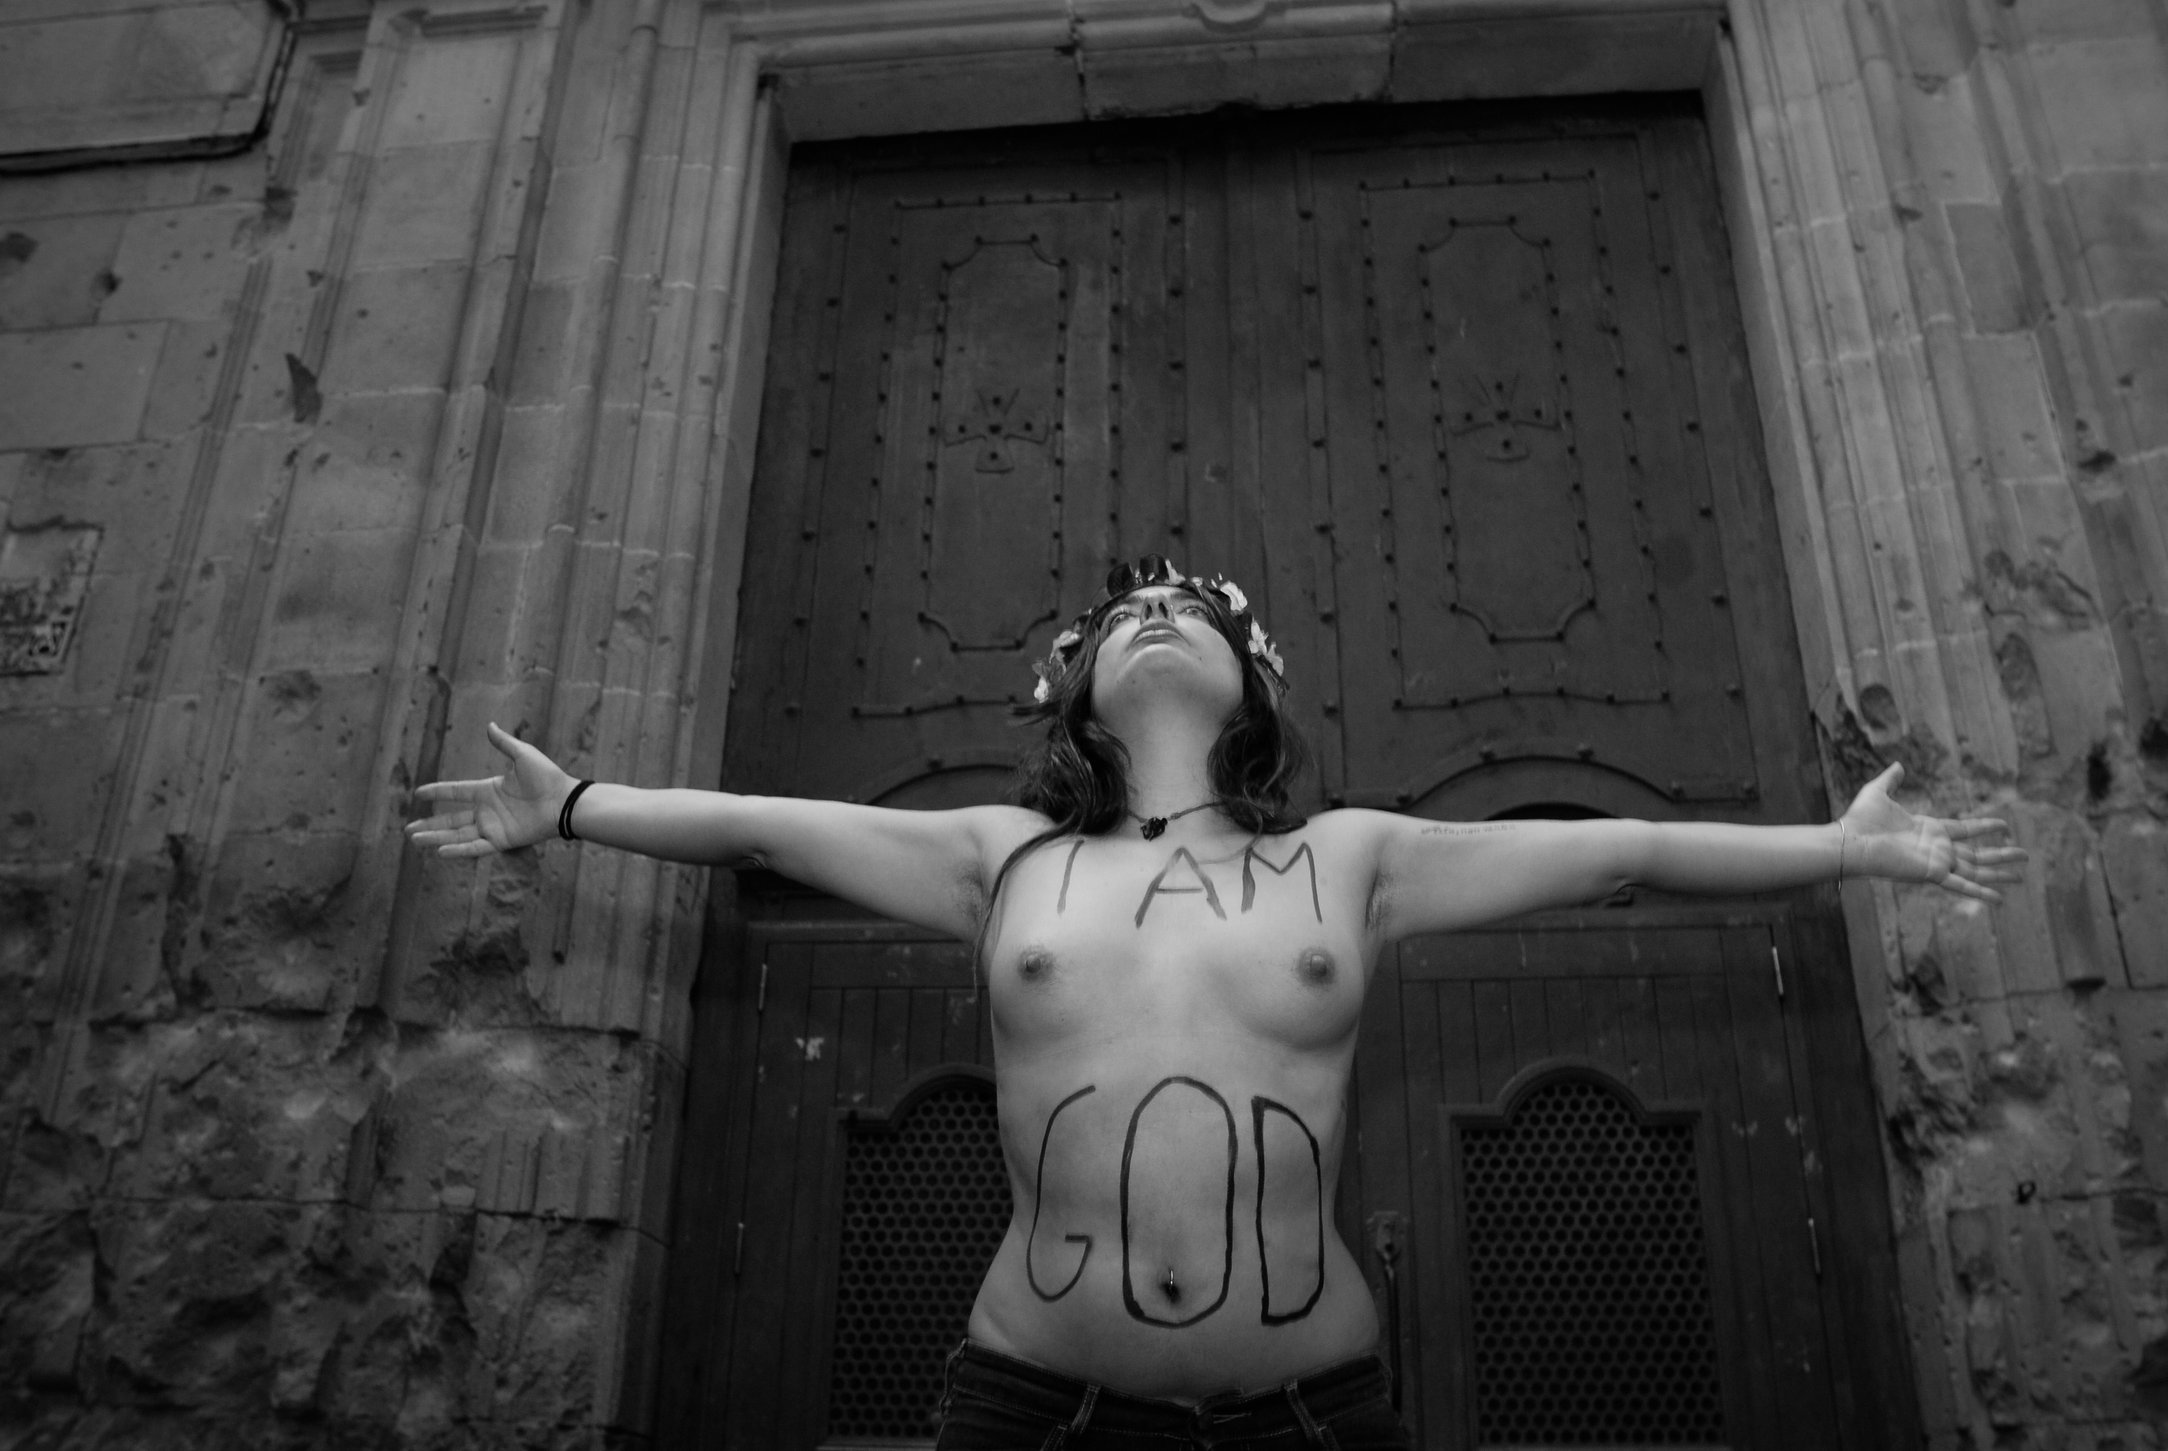 Femen Spain: The Naked War